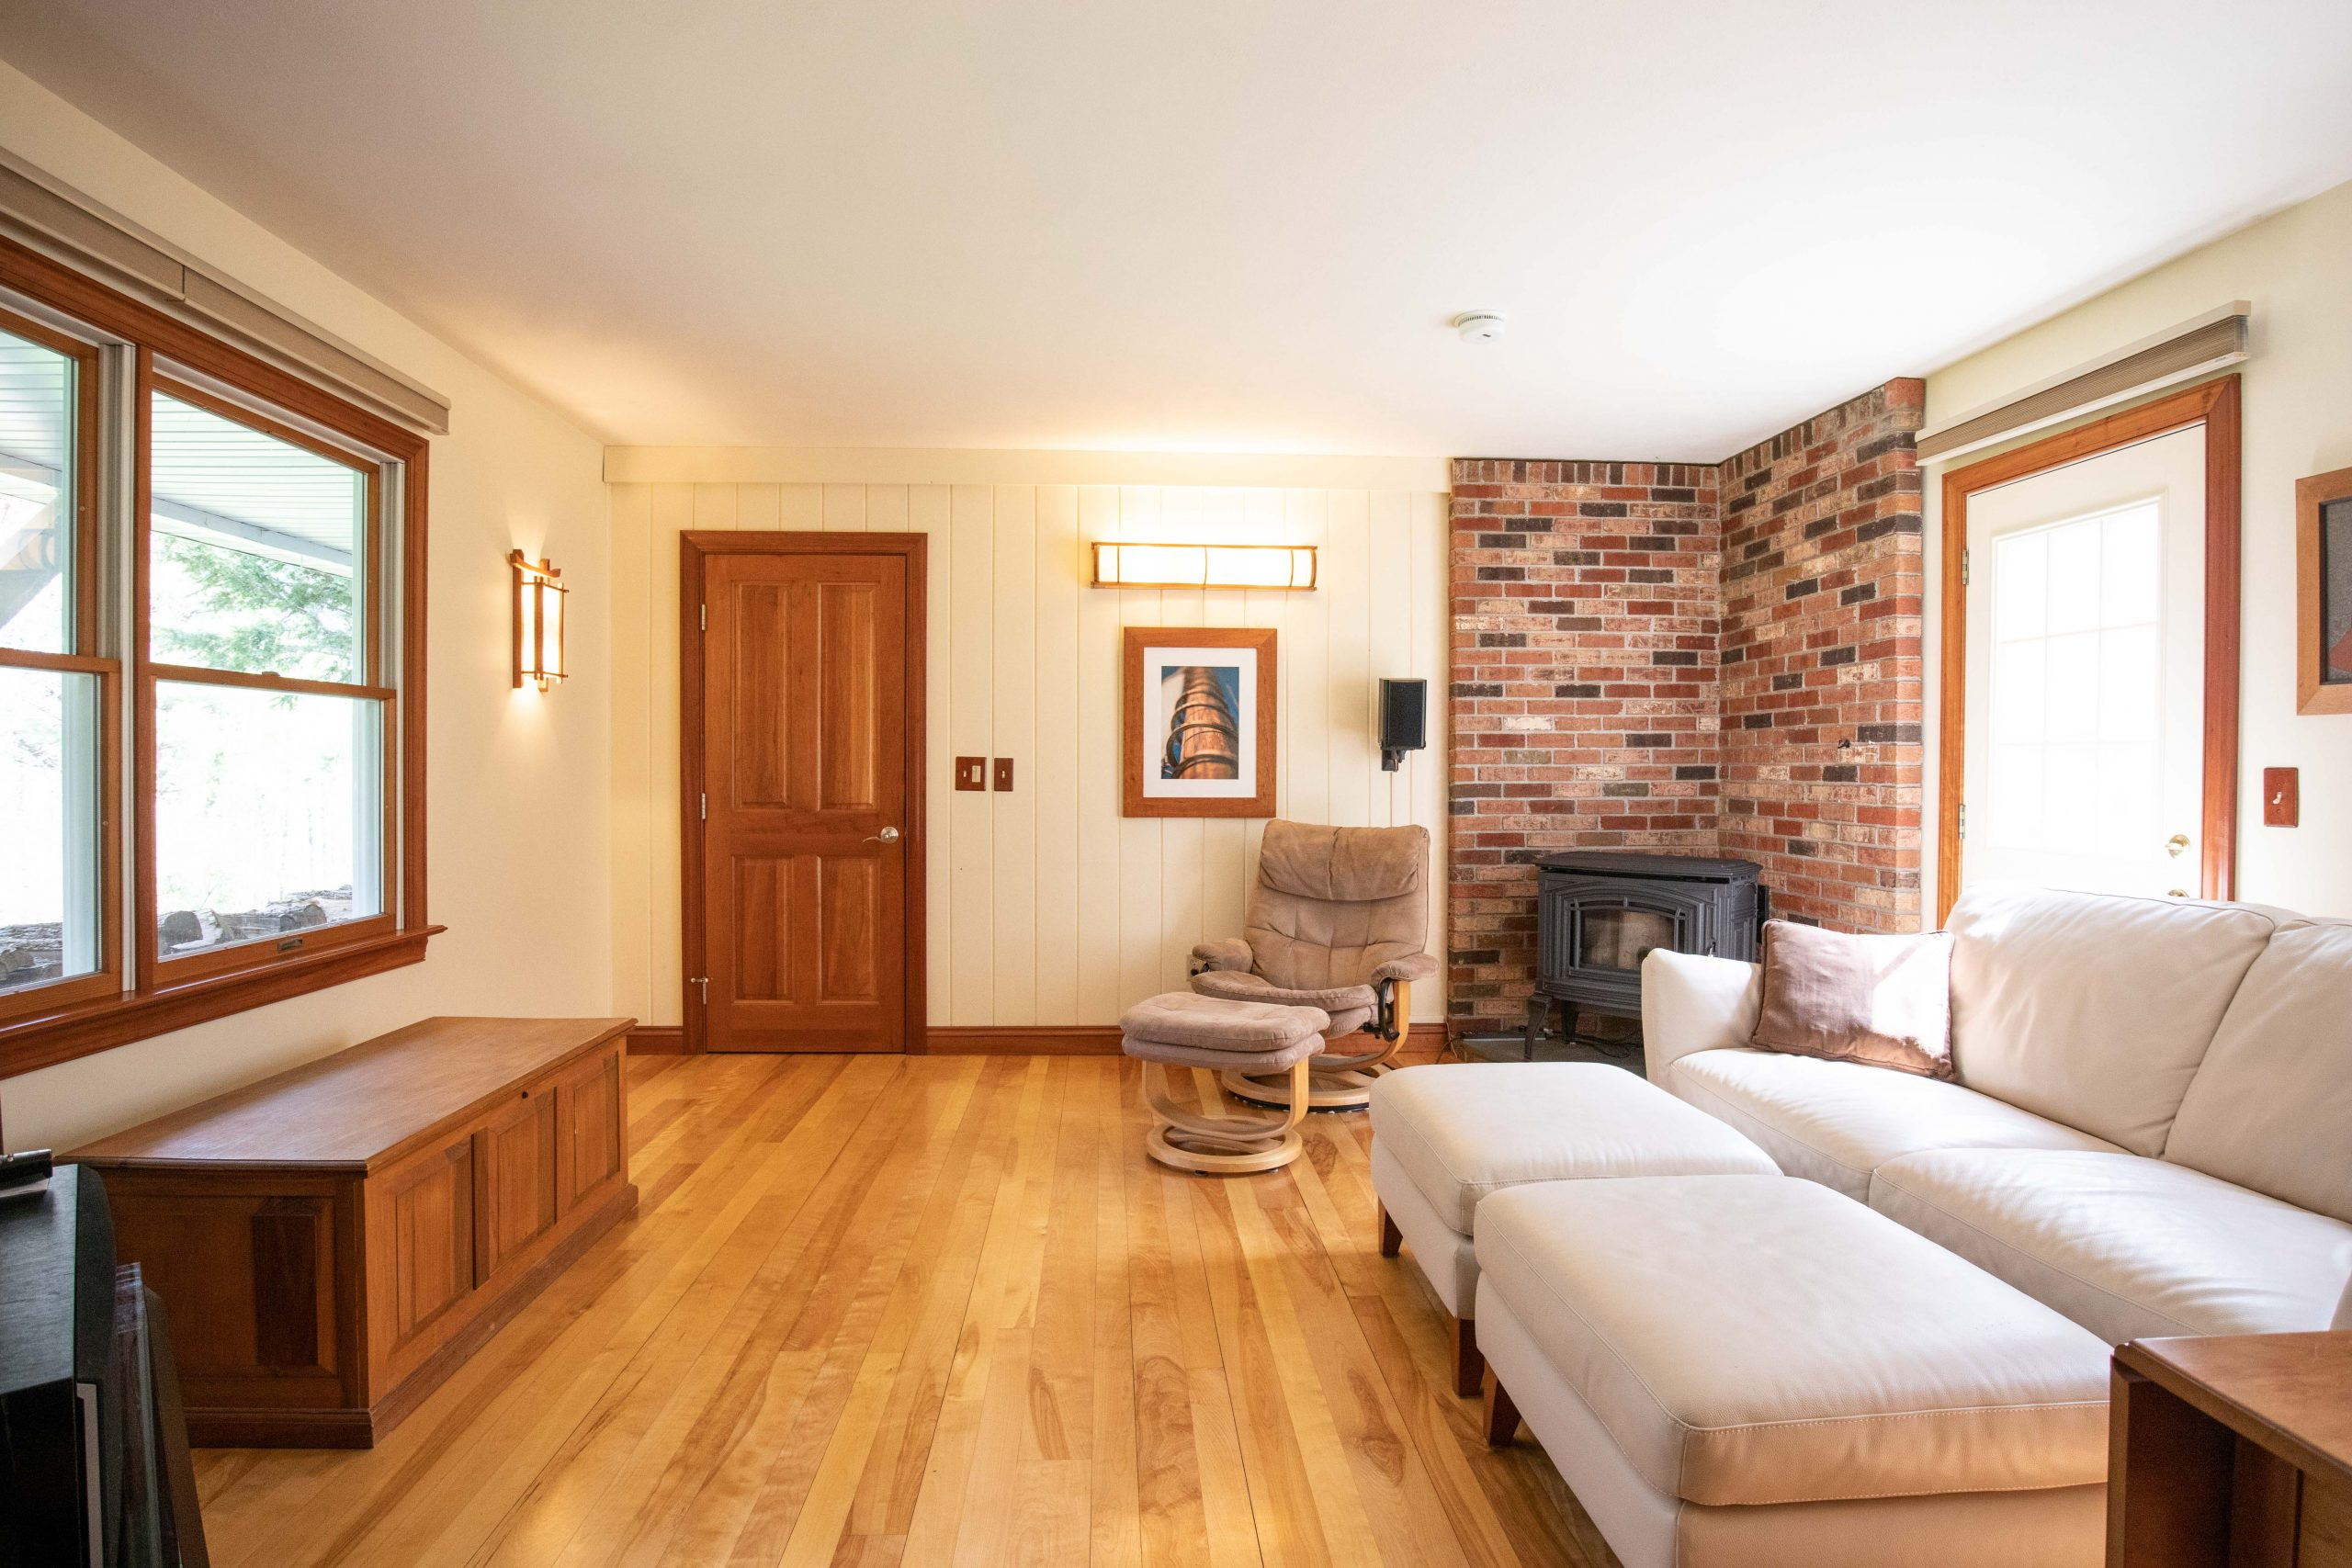 THE RESIDENCE - FAMILY ROOM